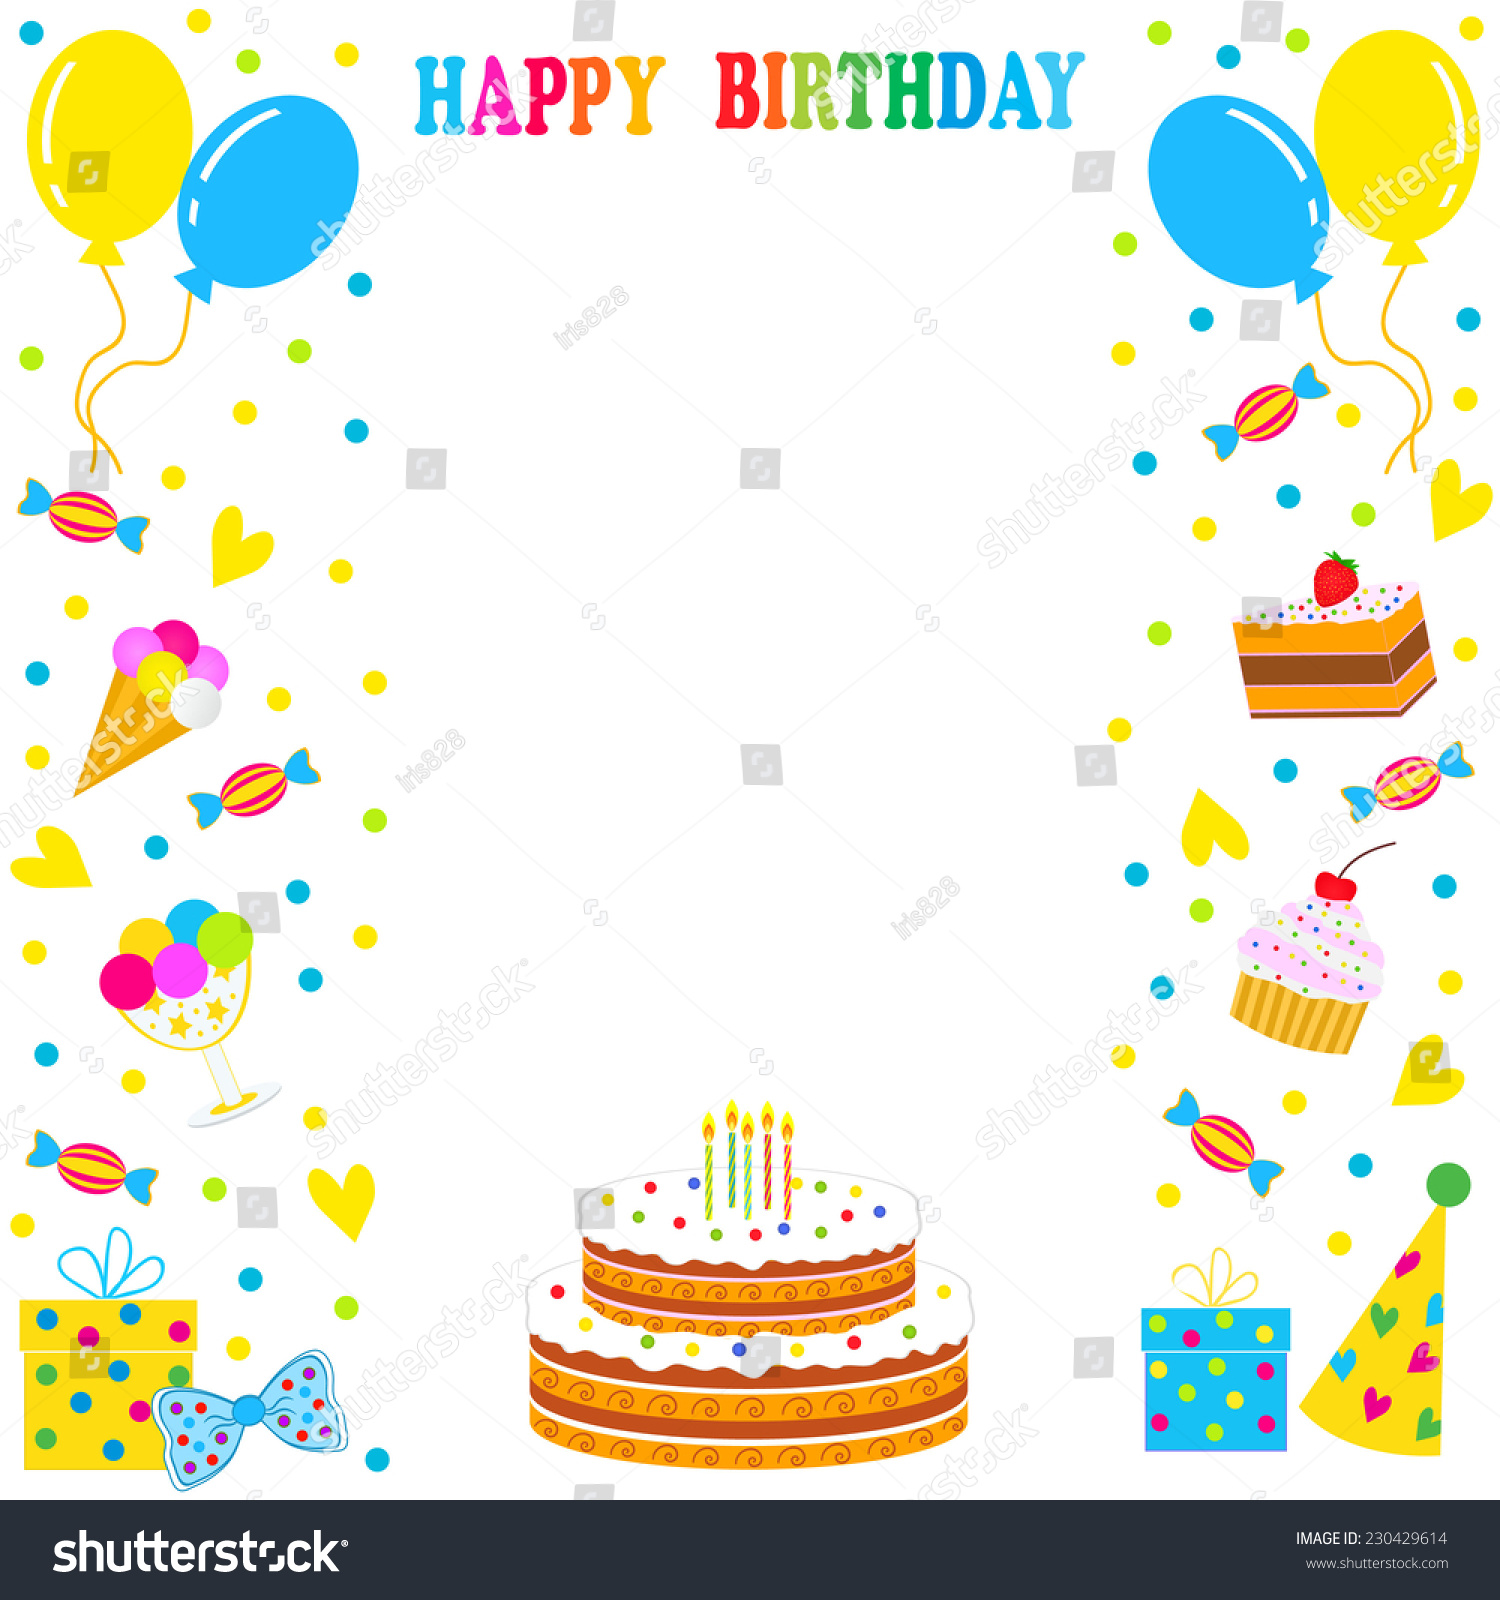 Royalty-free birthday frame, border. sweets,… #230429614 Stock Photo ...